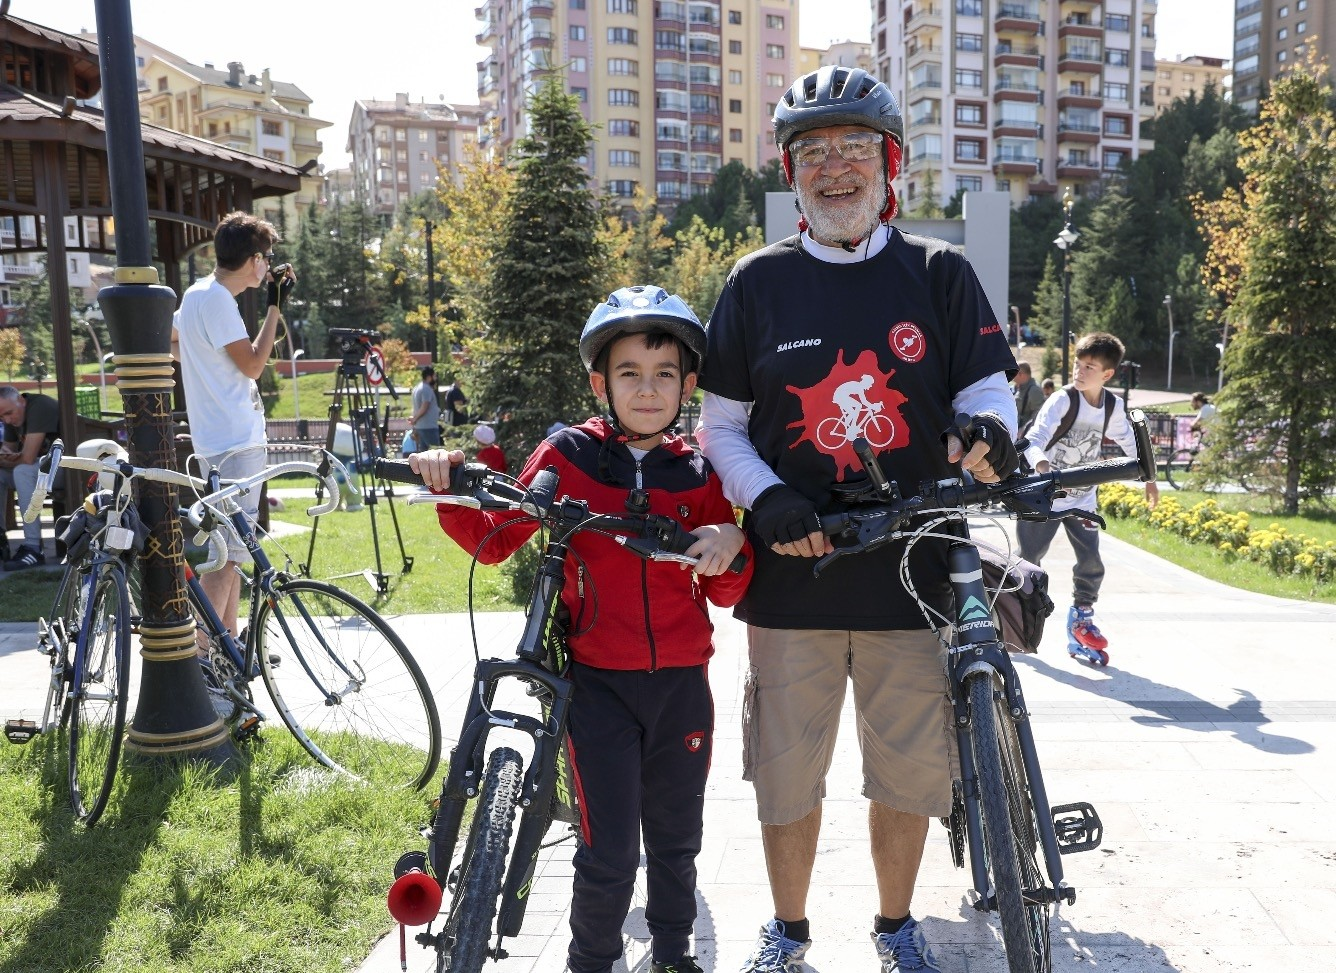 Cyclist u00d6mer Gu00fcleu00e7 (66) in Ankara speaks on the occasion of Sept. 29 World Heart Day. Todayu2019s International Day for Older Persons needs more careful consideration, one expert says.